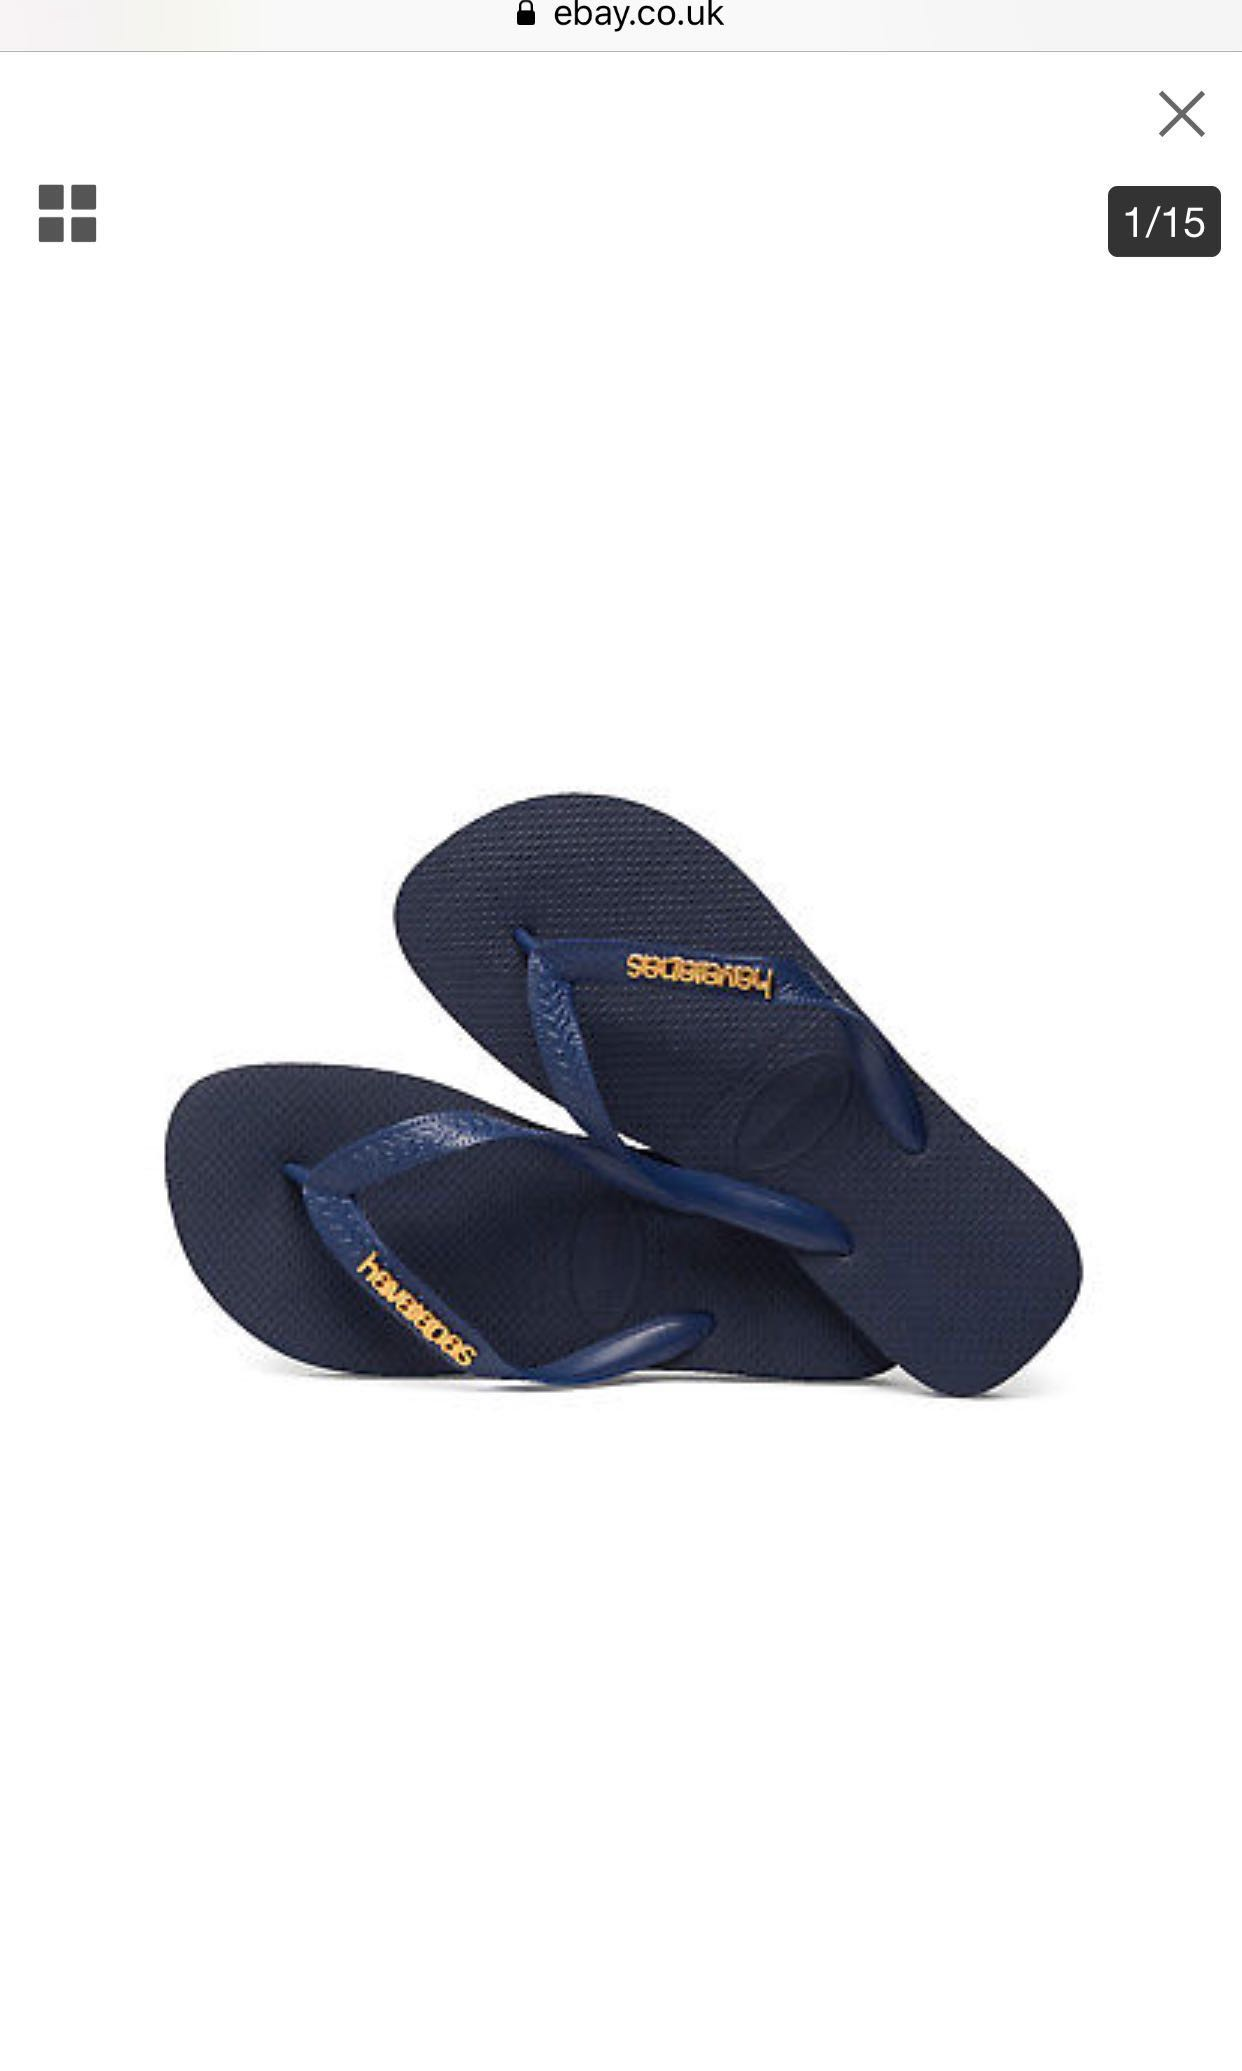 ad9adc213 Havaianas Navy Gold Metal Logo